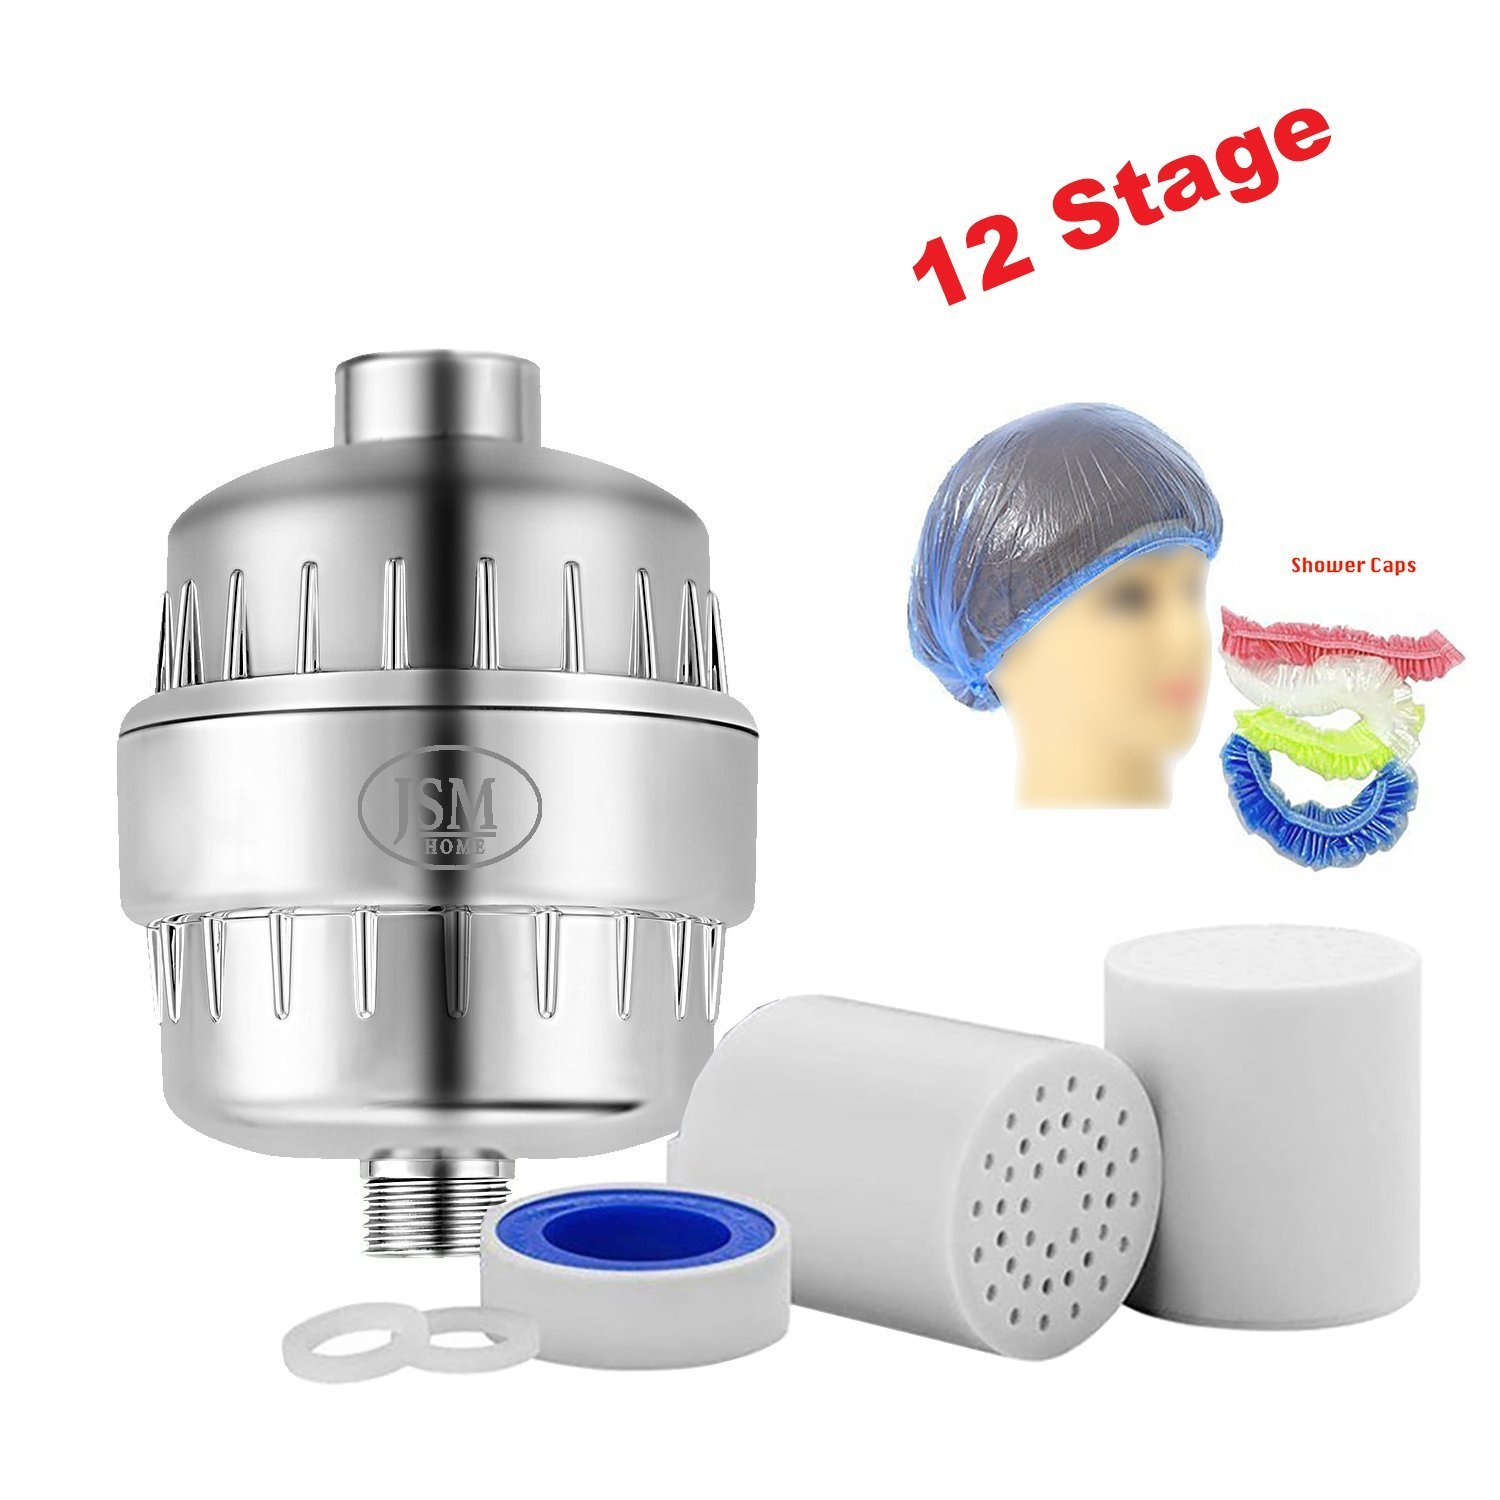 JsmHome 12 Stage Shower head hard water filter/softener, Increases Ph and ORP, removes bacteria & viruses, chlorine, impurities, fluoride, rust metal - boosts skin health